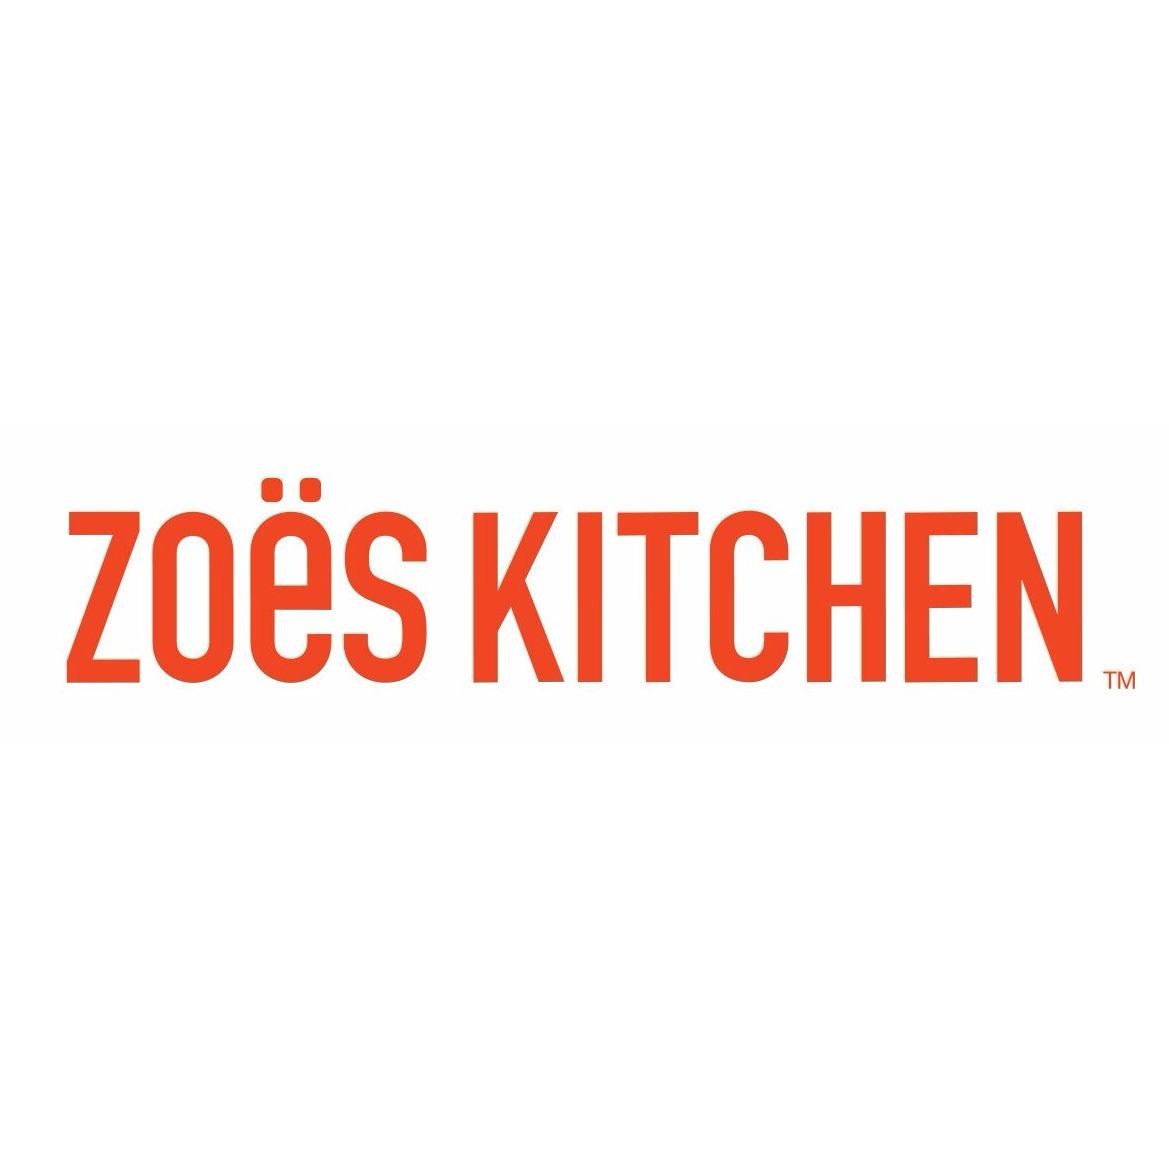 Zoes Kitchen - Restaurants Fayetteville North Carolina